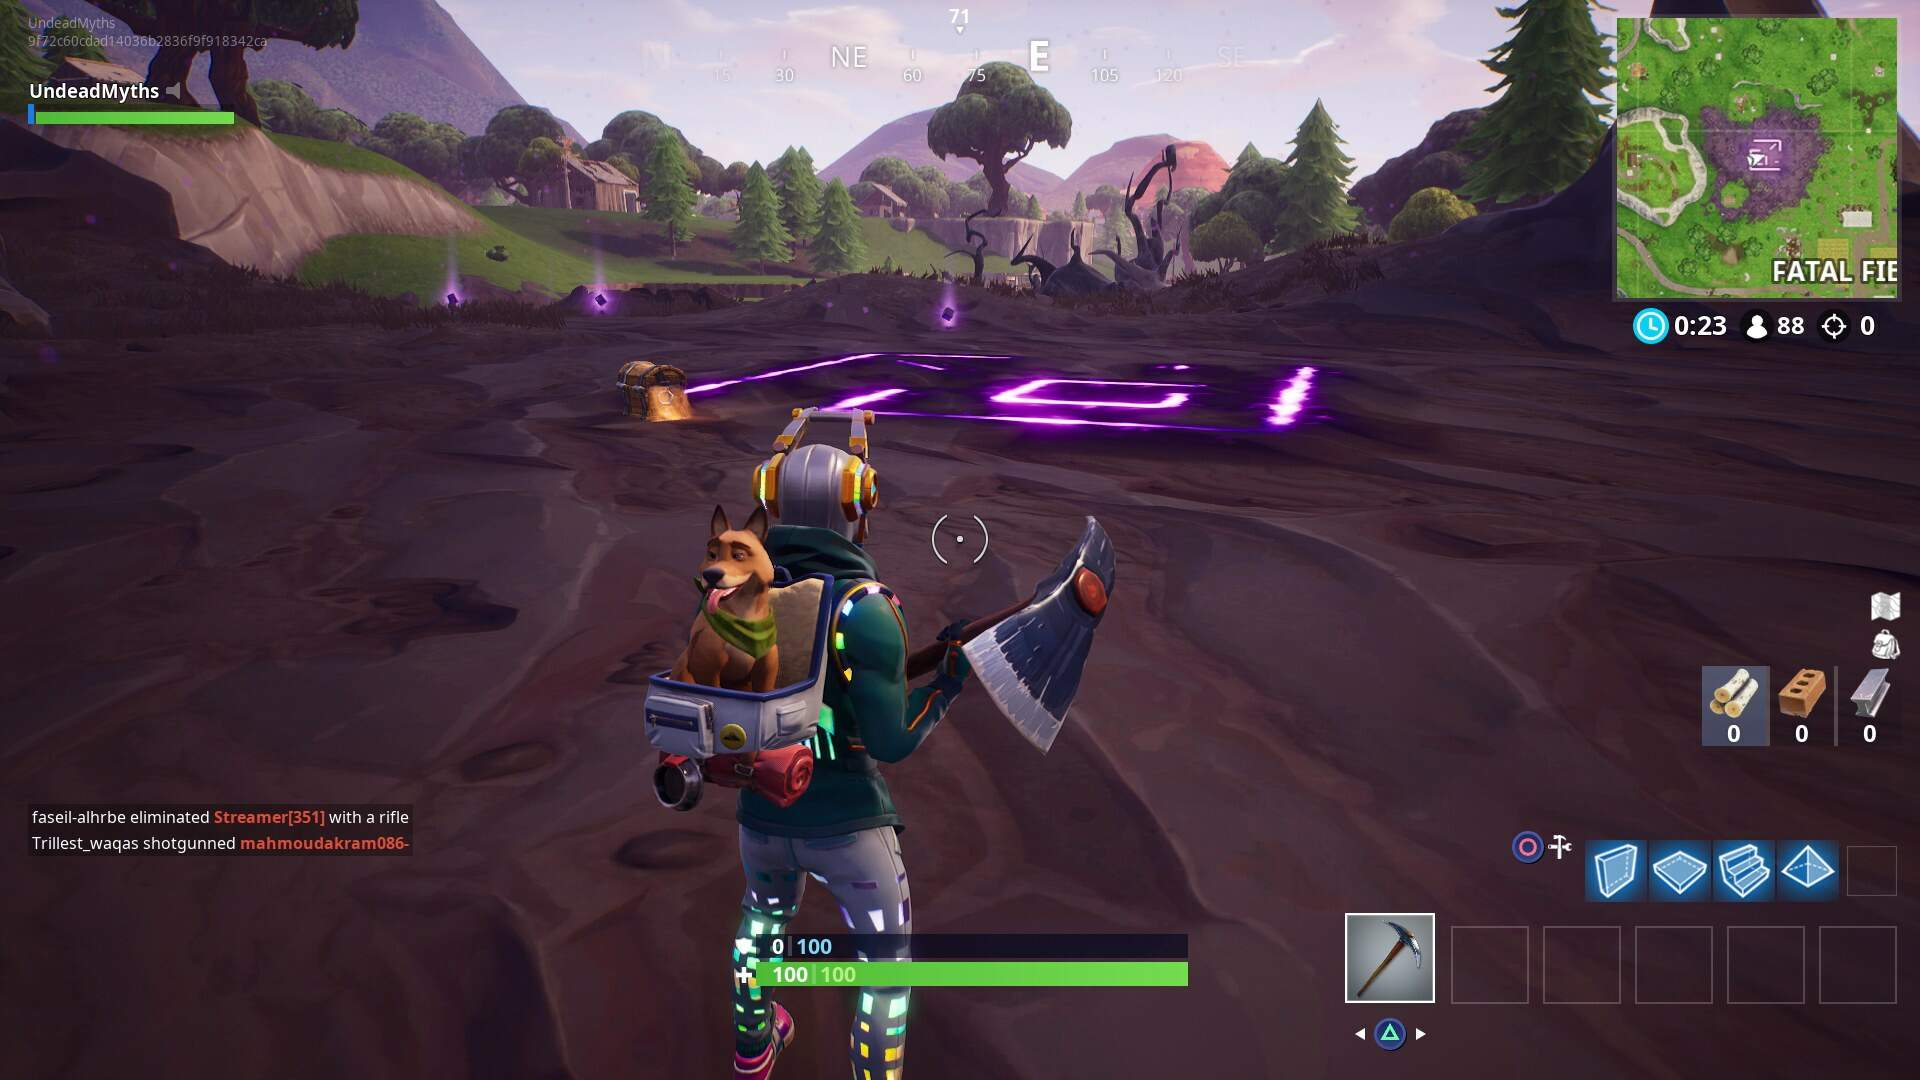 Fortnite Corrupted Area Locations